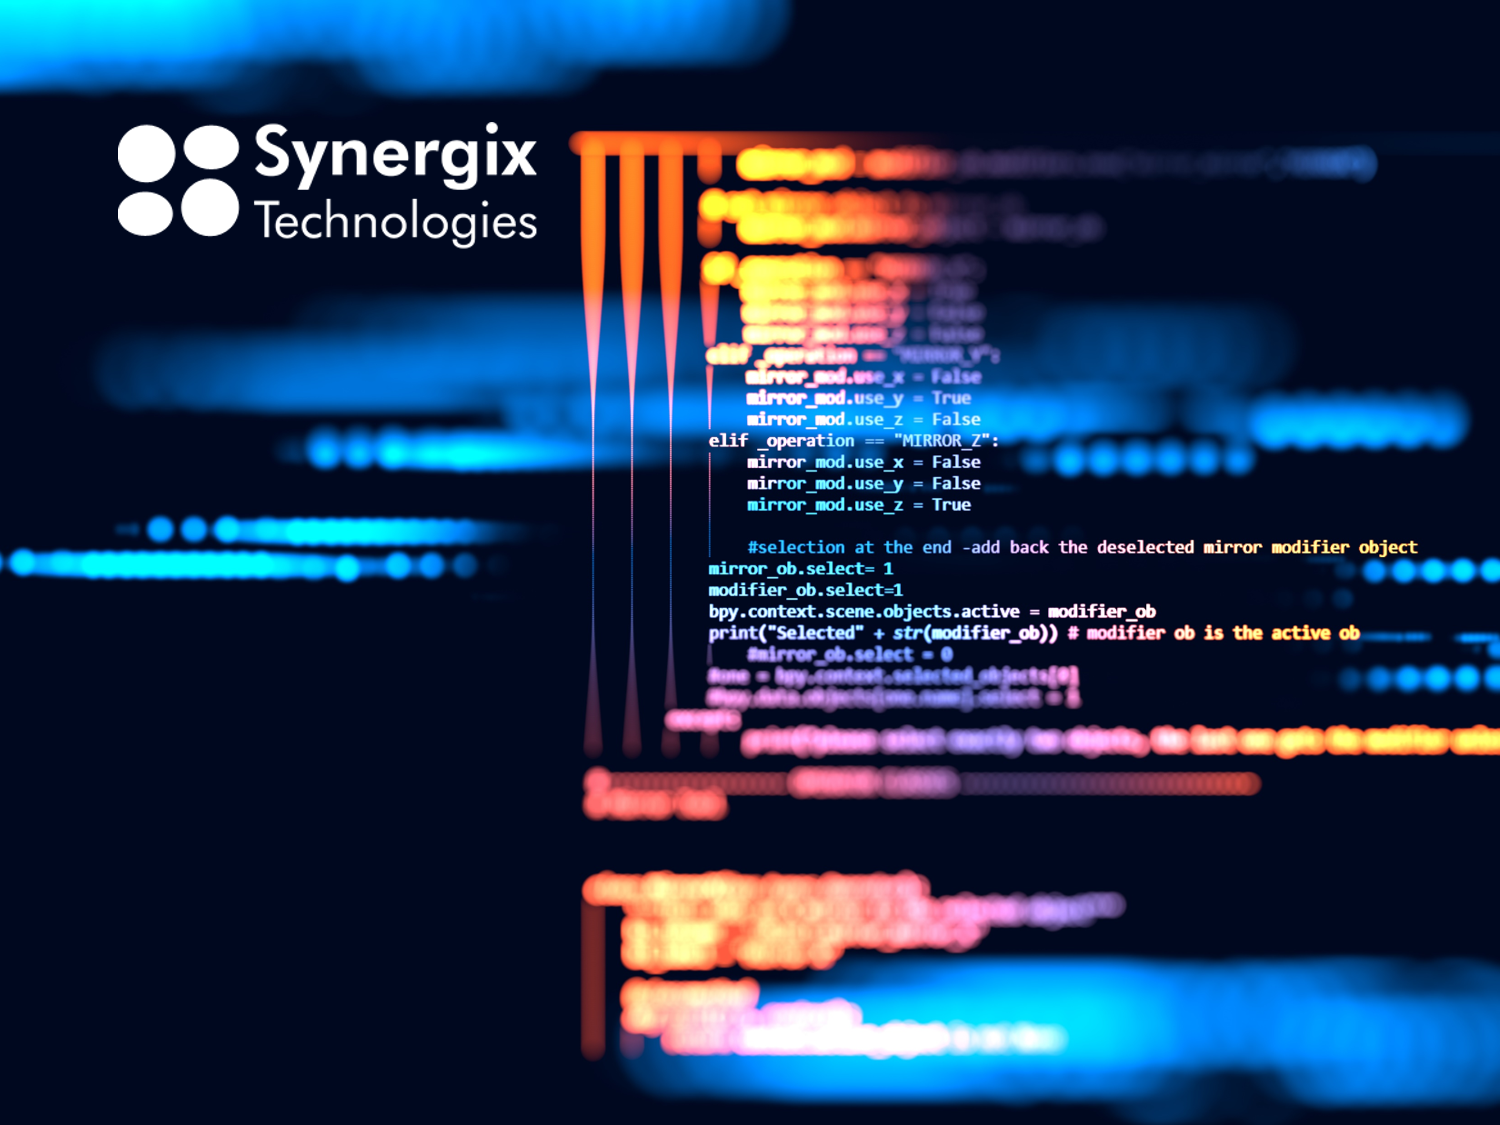 Synergix ERP Software Updates - August 2021